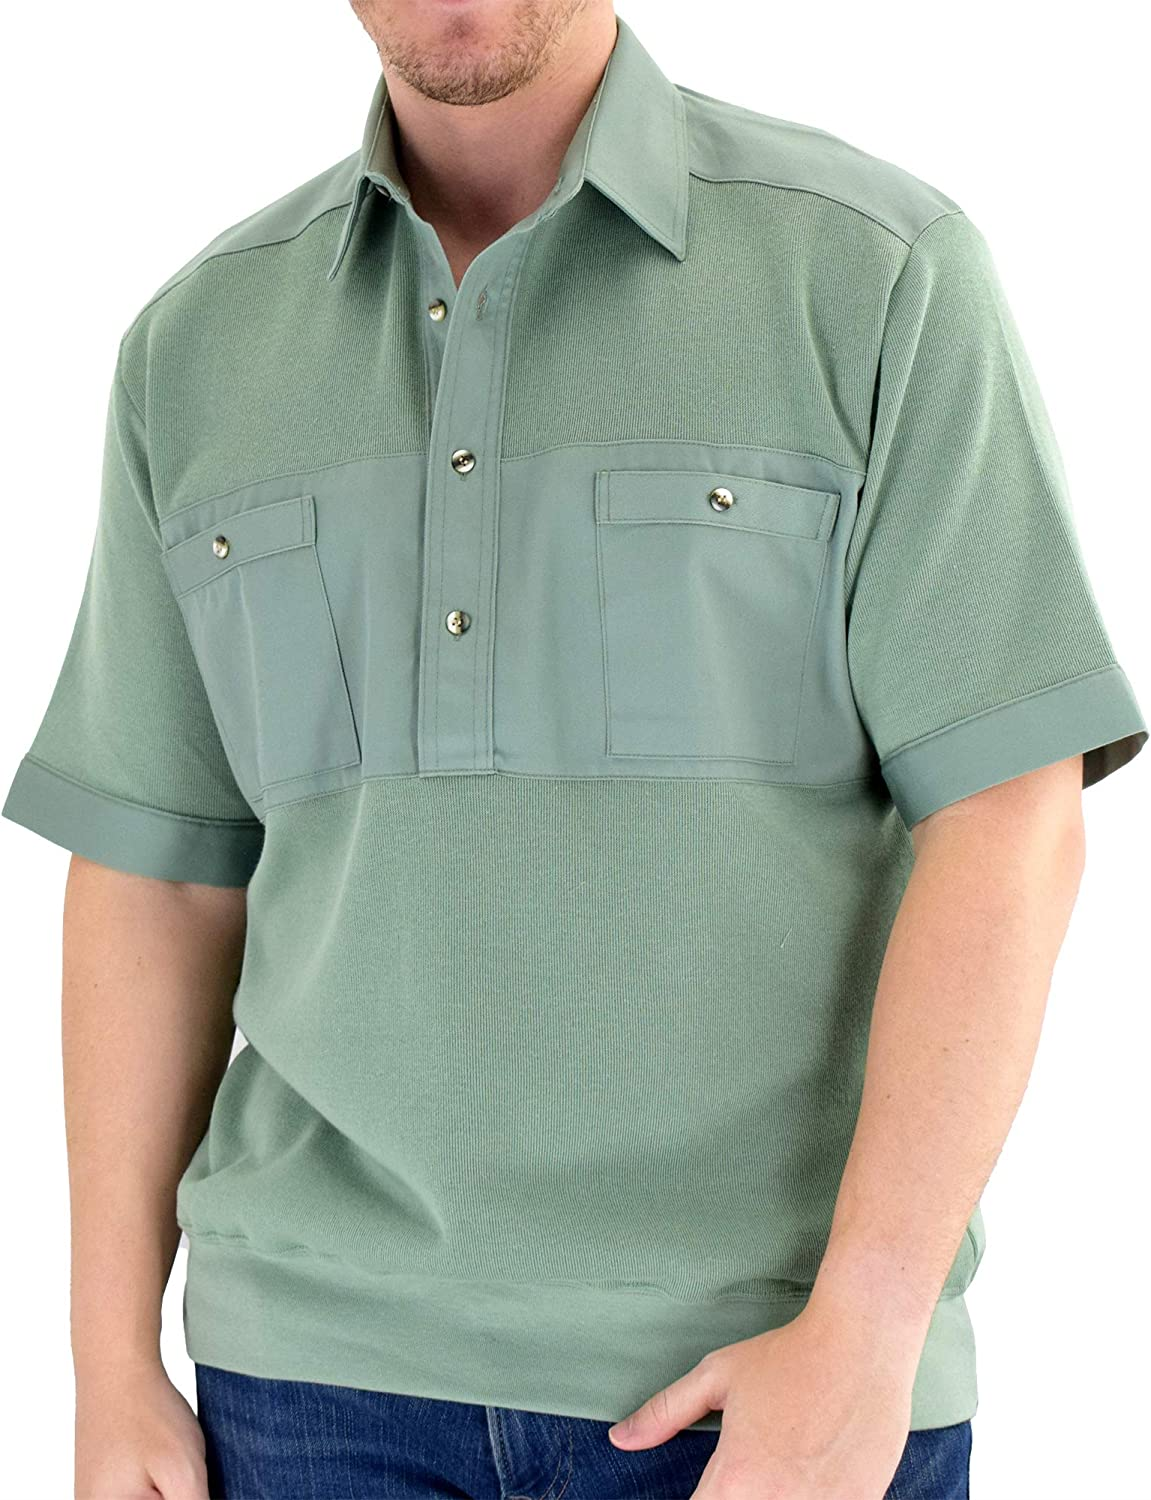 Classics by Palmland Solid Knit Banded Bottom Shirt with Woven Chest Panel 6041-22N Big and Tall